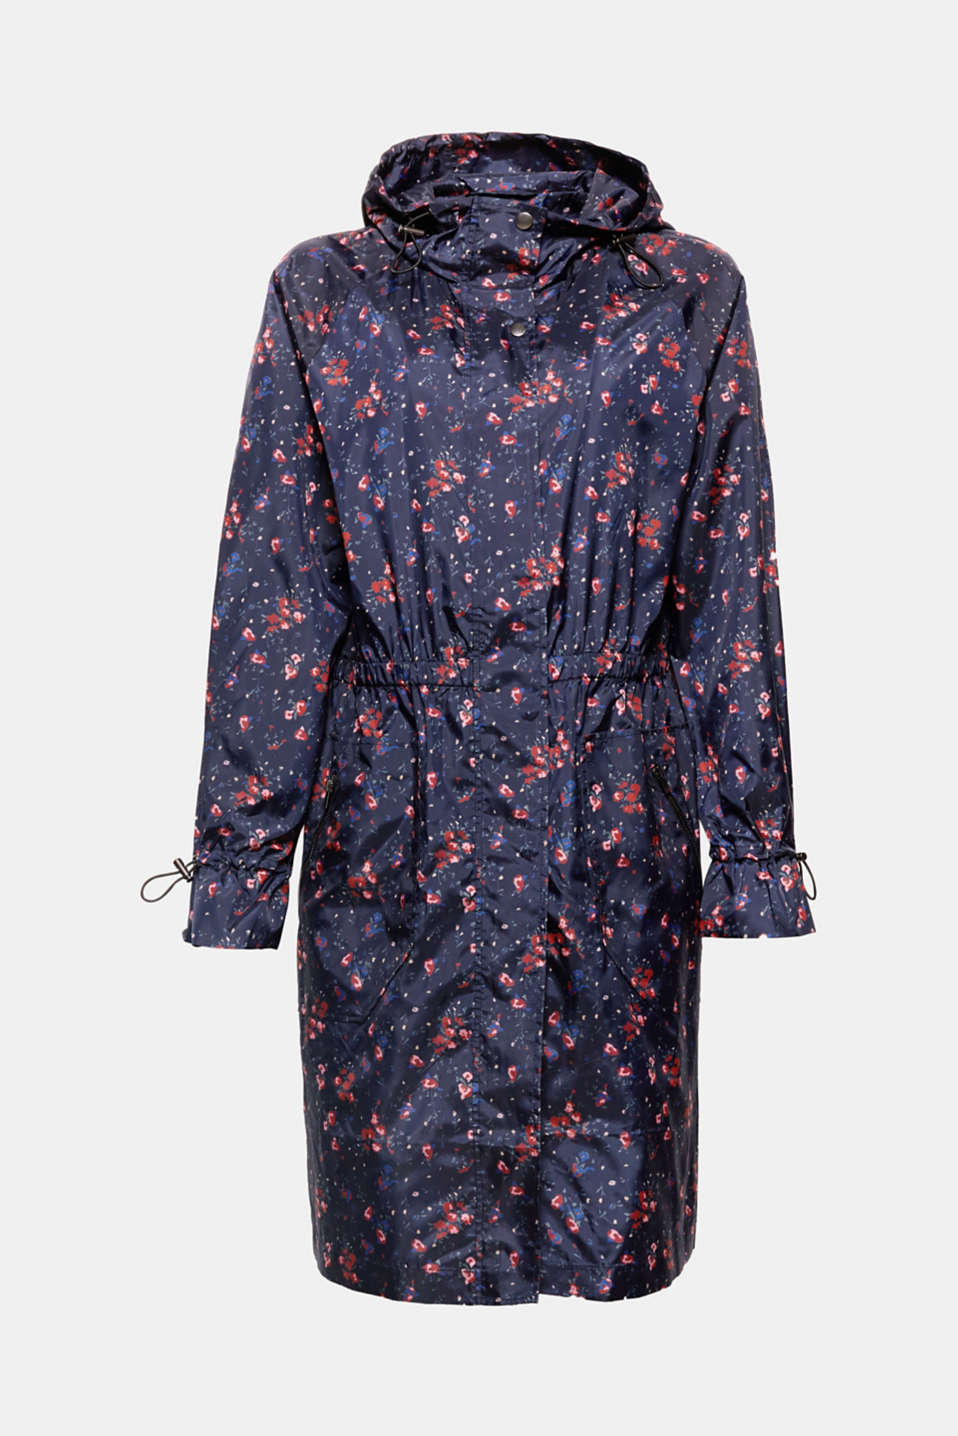 For those short showers or to pep up your outfit: super-lightweight, unlined long parka in smooth nylon with a pretty floral print, hood and stretchy waist trim!